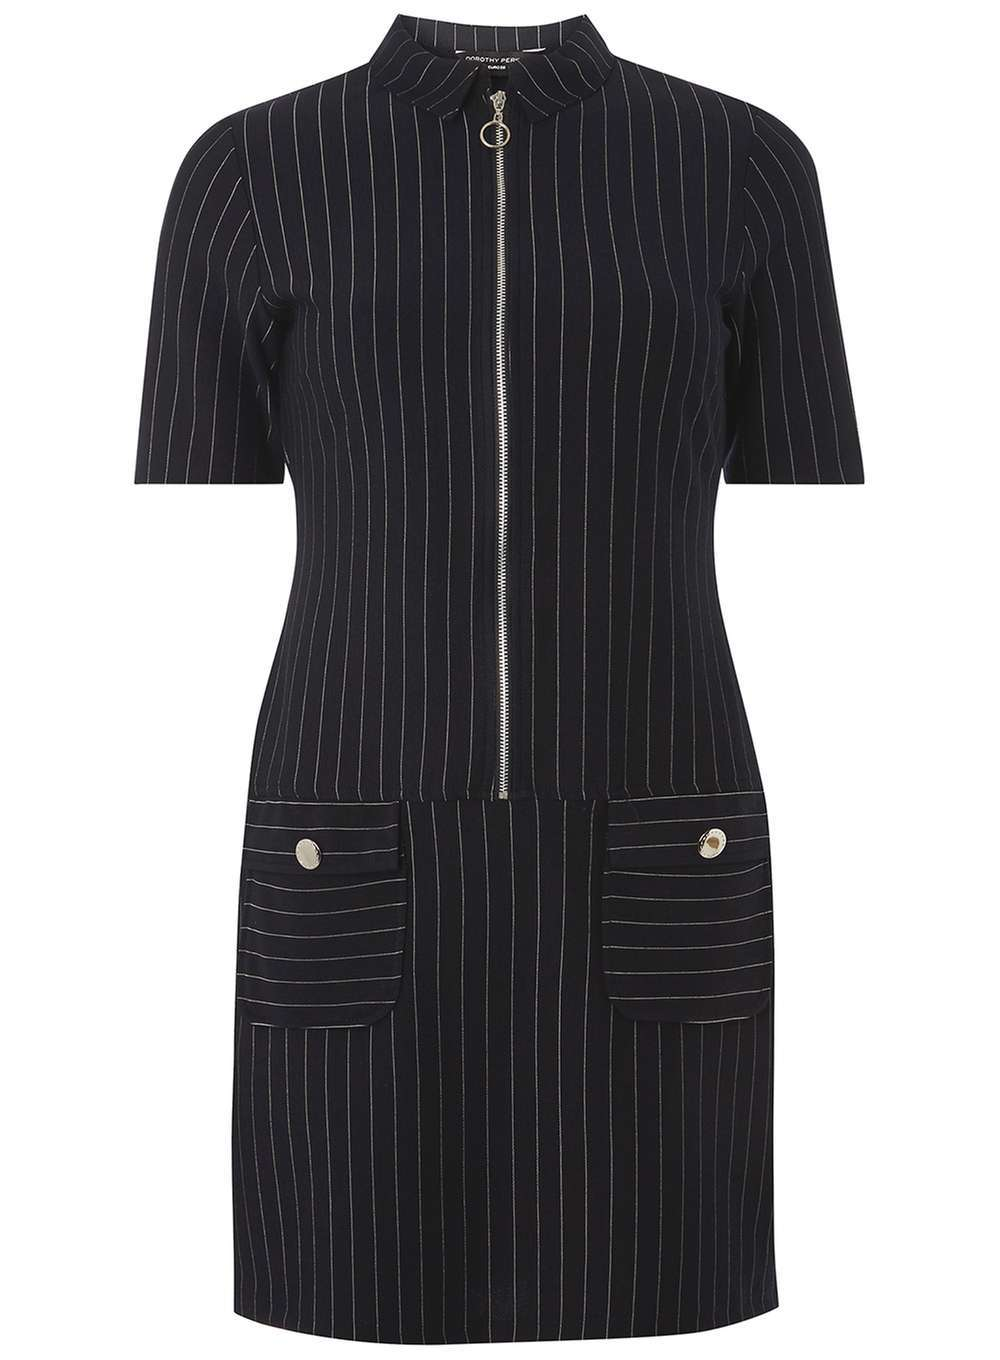 Womens Stripe Zip Front Shift Dress Blue - style: shirt; length: mid thigh; neckline: shirt collar/peter pan/zip with opening; fit: tailored/fitted; pattern: striped; secondary colour: white; predominant colour: navy; fibres: polyester/polyamide - 100%; hip detail: subtle/flattering hip detail; sleeve length: short sleeve; sleeve style: standard; texture group: crepes; pattern type: fabric; occasions: creative work; season: a/w 2016; wardrobe: highlight; embellishment location: bust